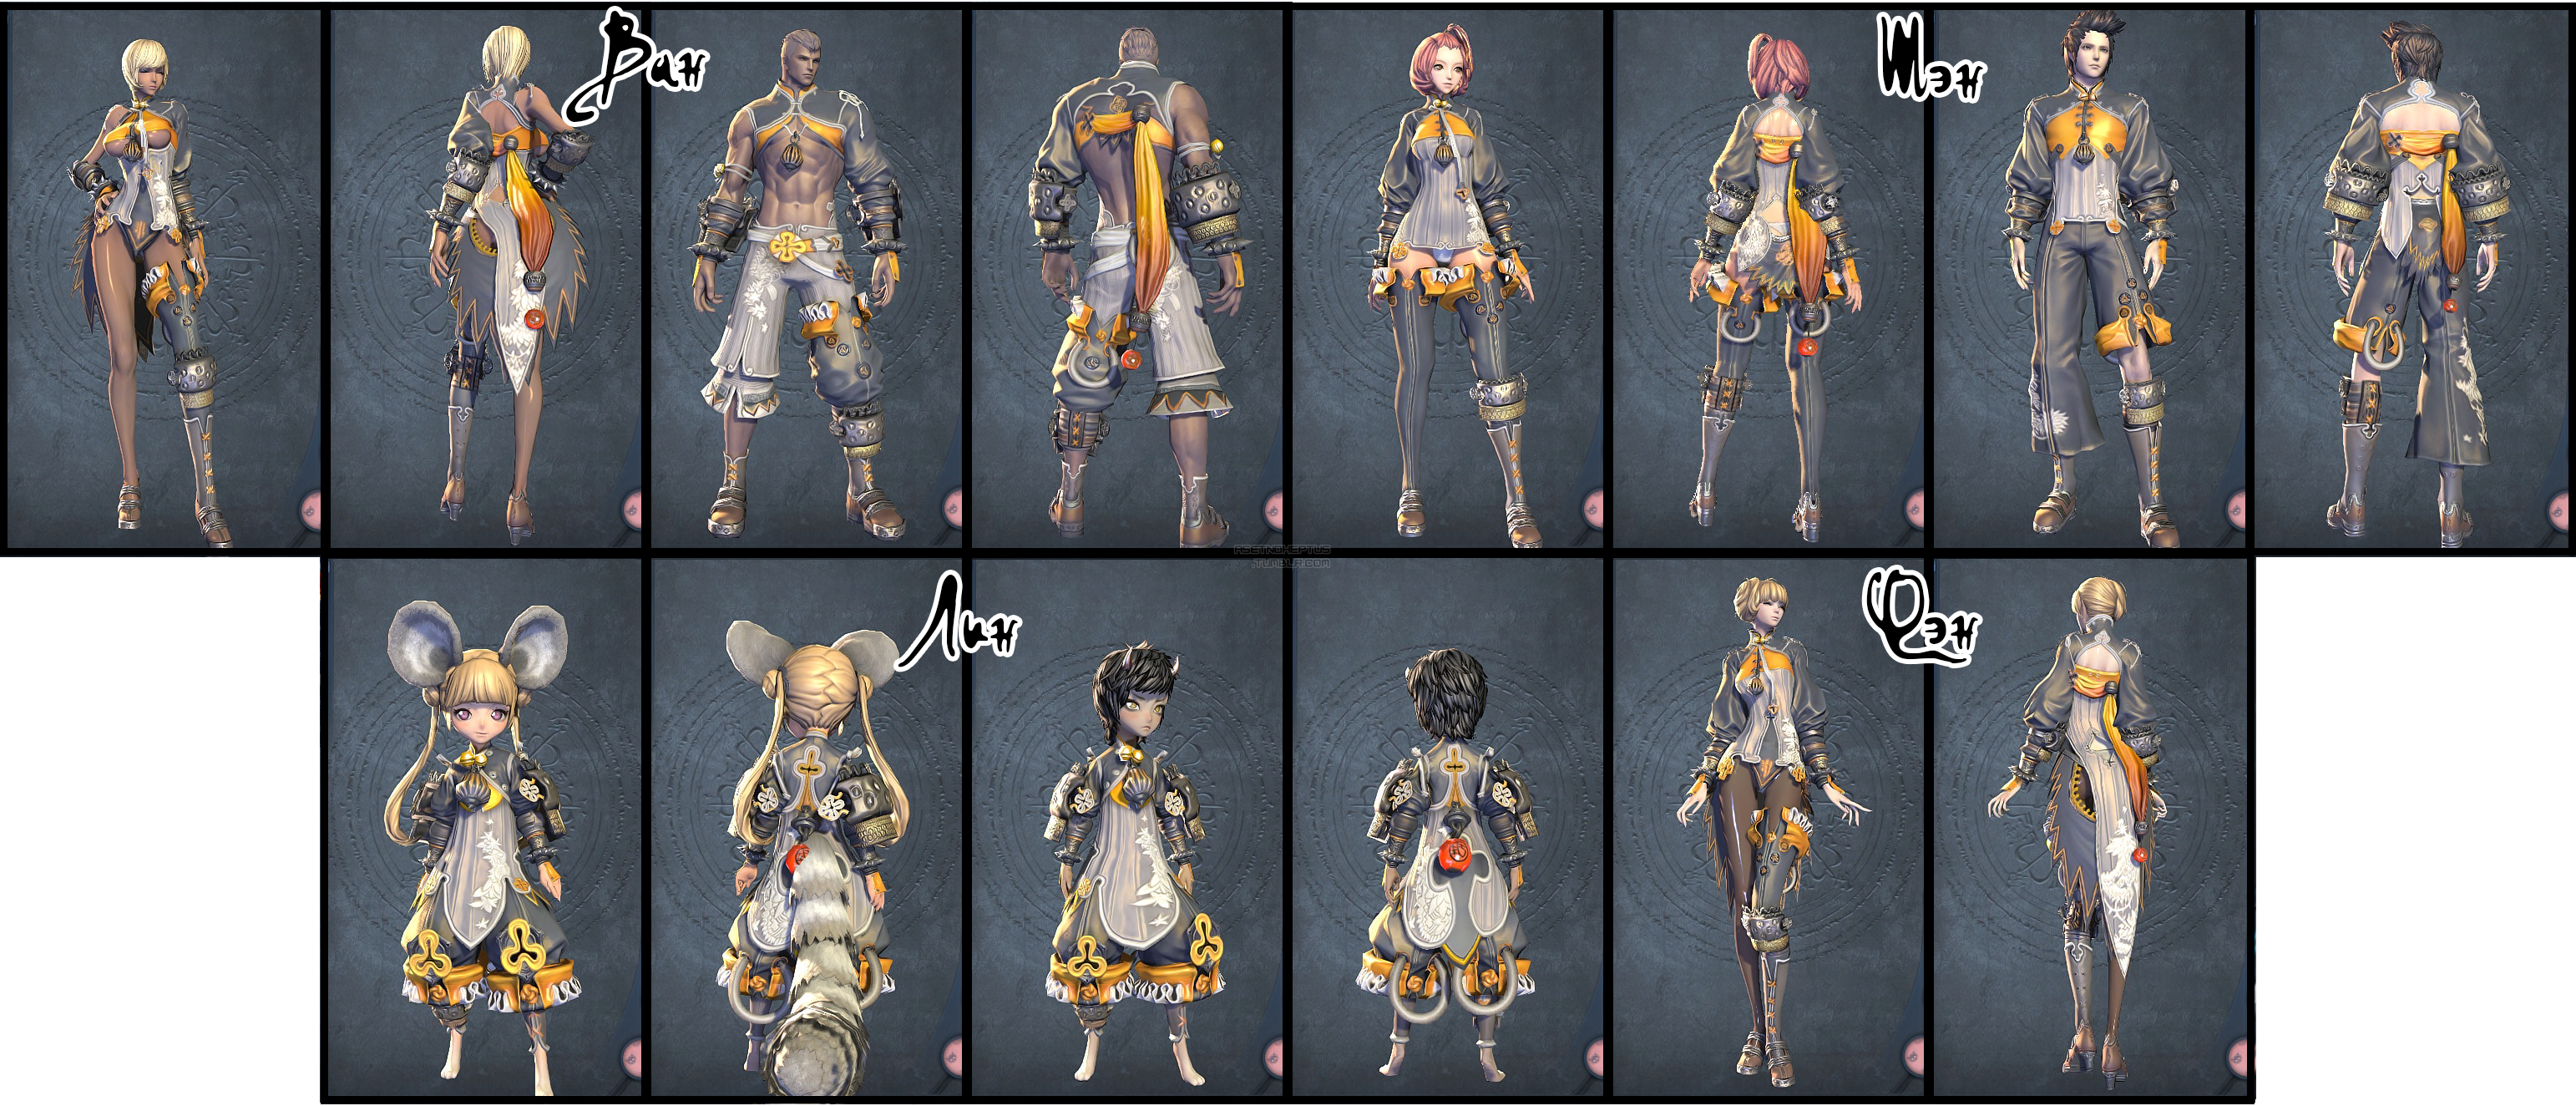 Blade and soul nyde mode xxx pics